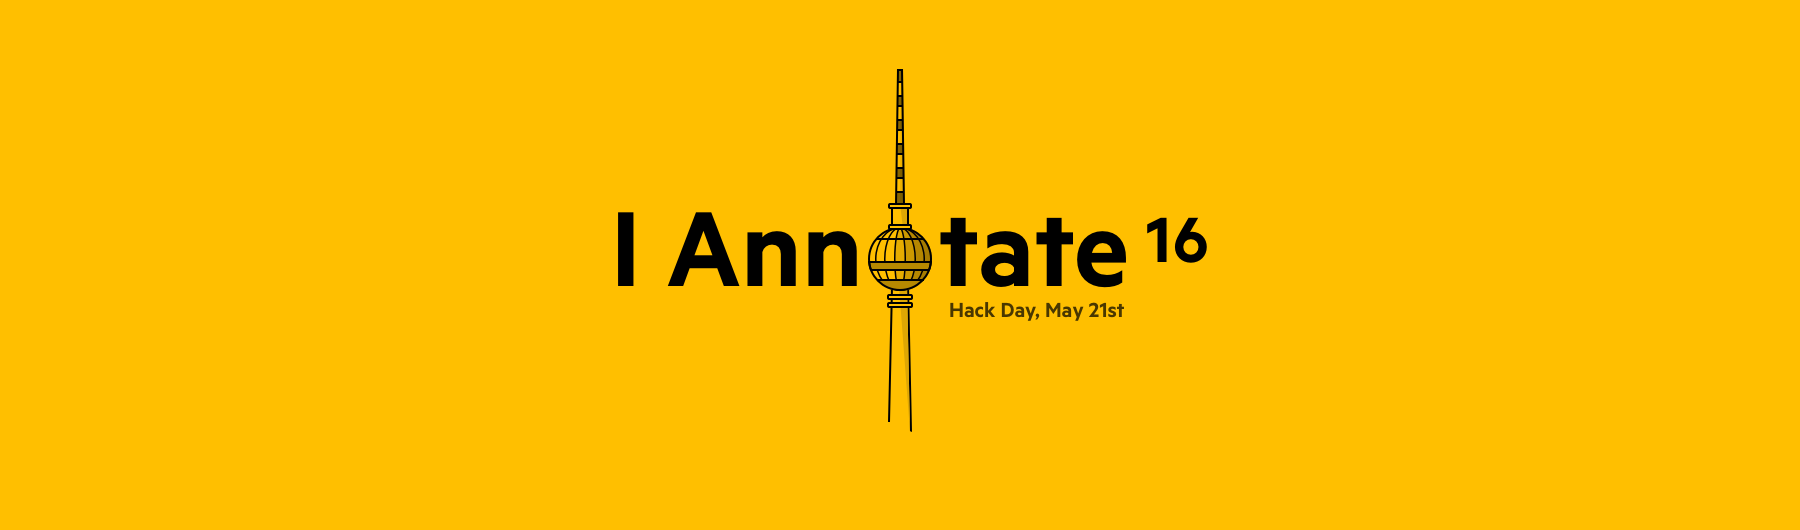 I Annotate 2016 Hack Day